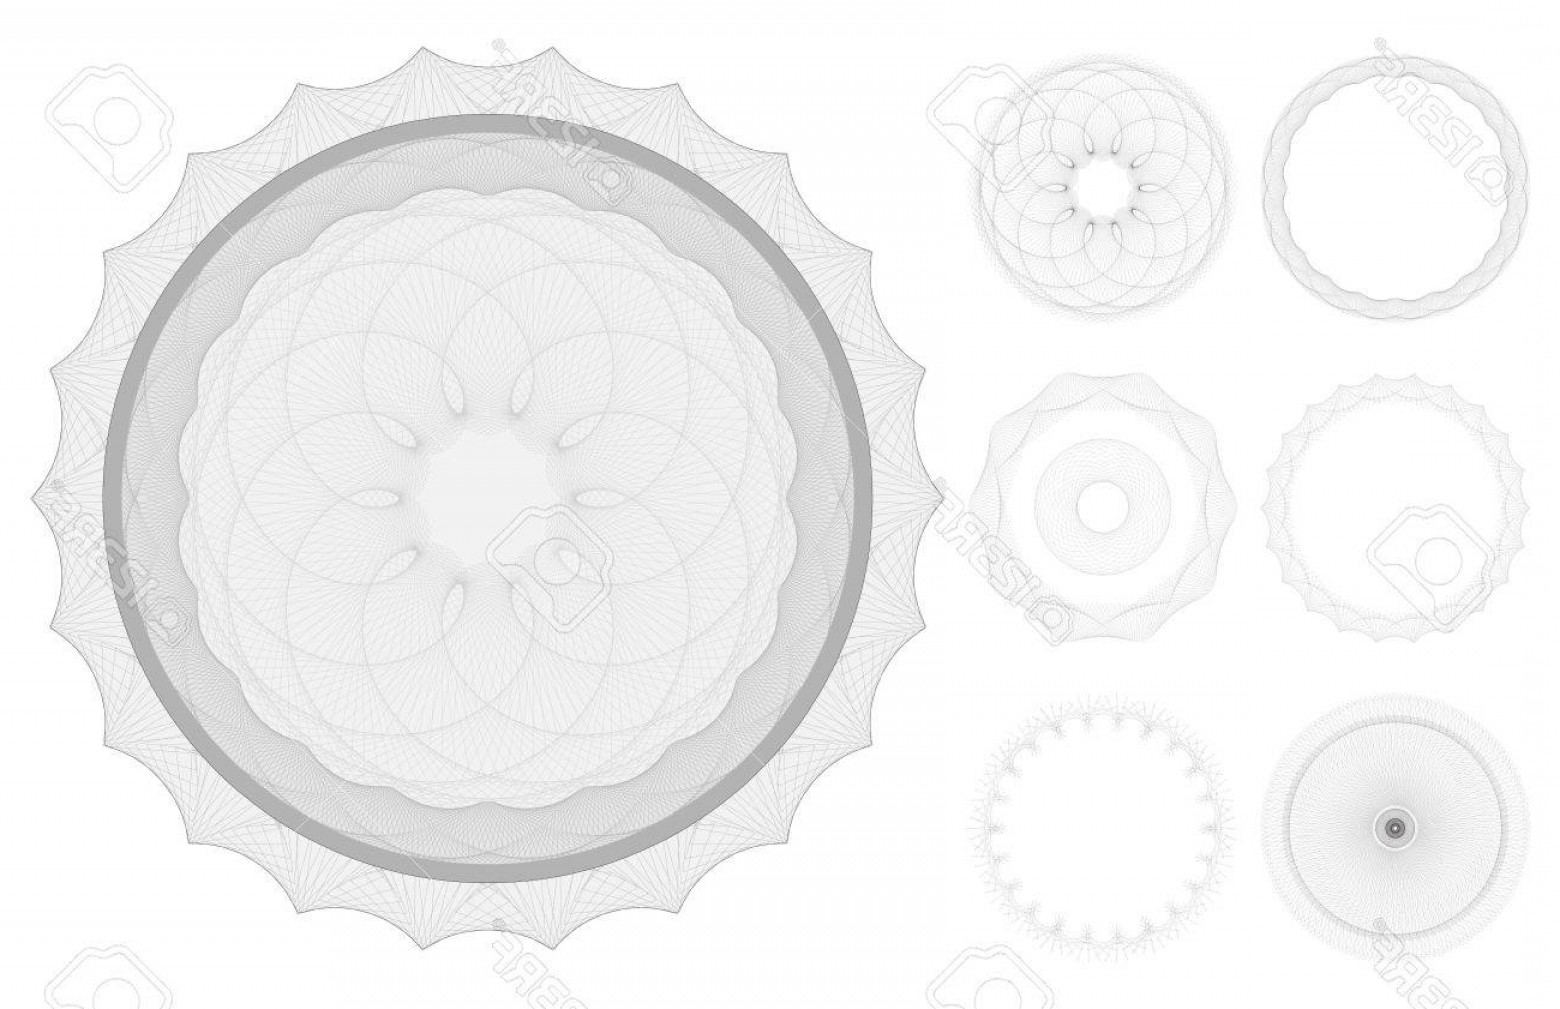 Security Vector Patterns: Photoset Of Guilloche Patterns Like Those Used For Security On Banknotes And Certificates In File Lines A